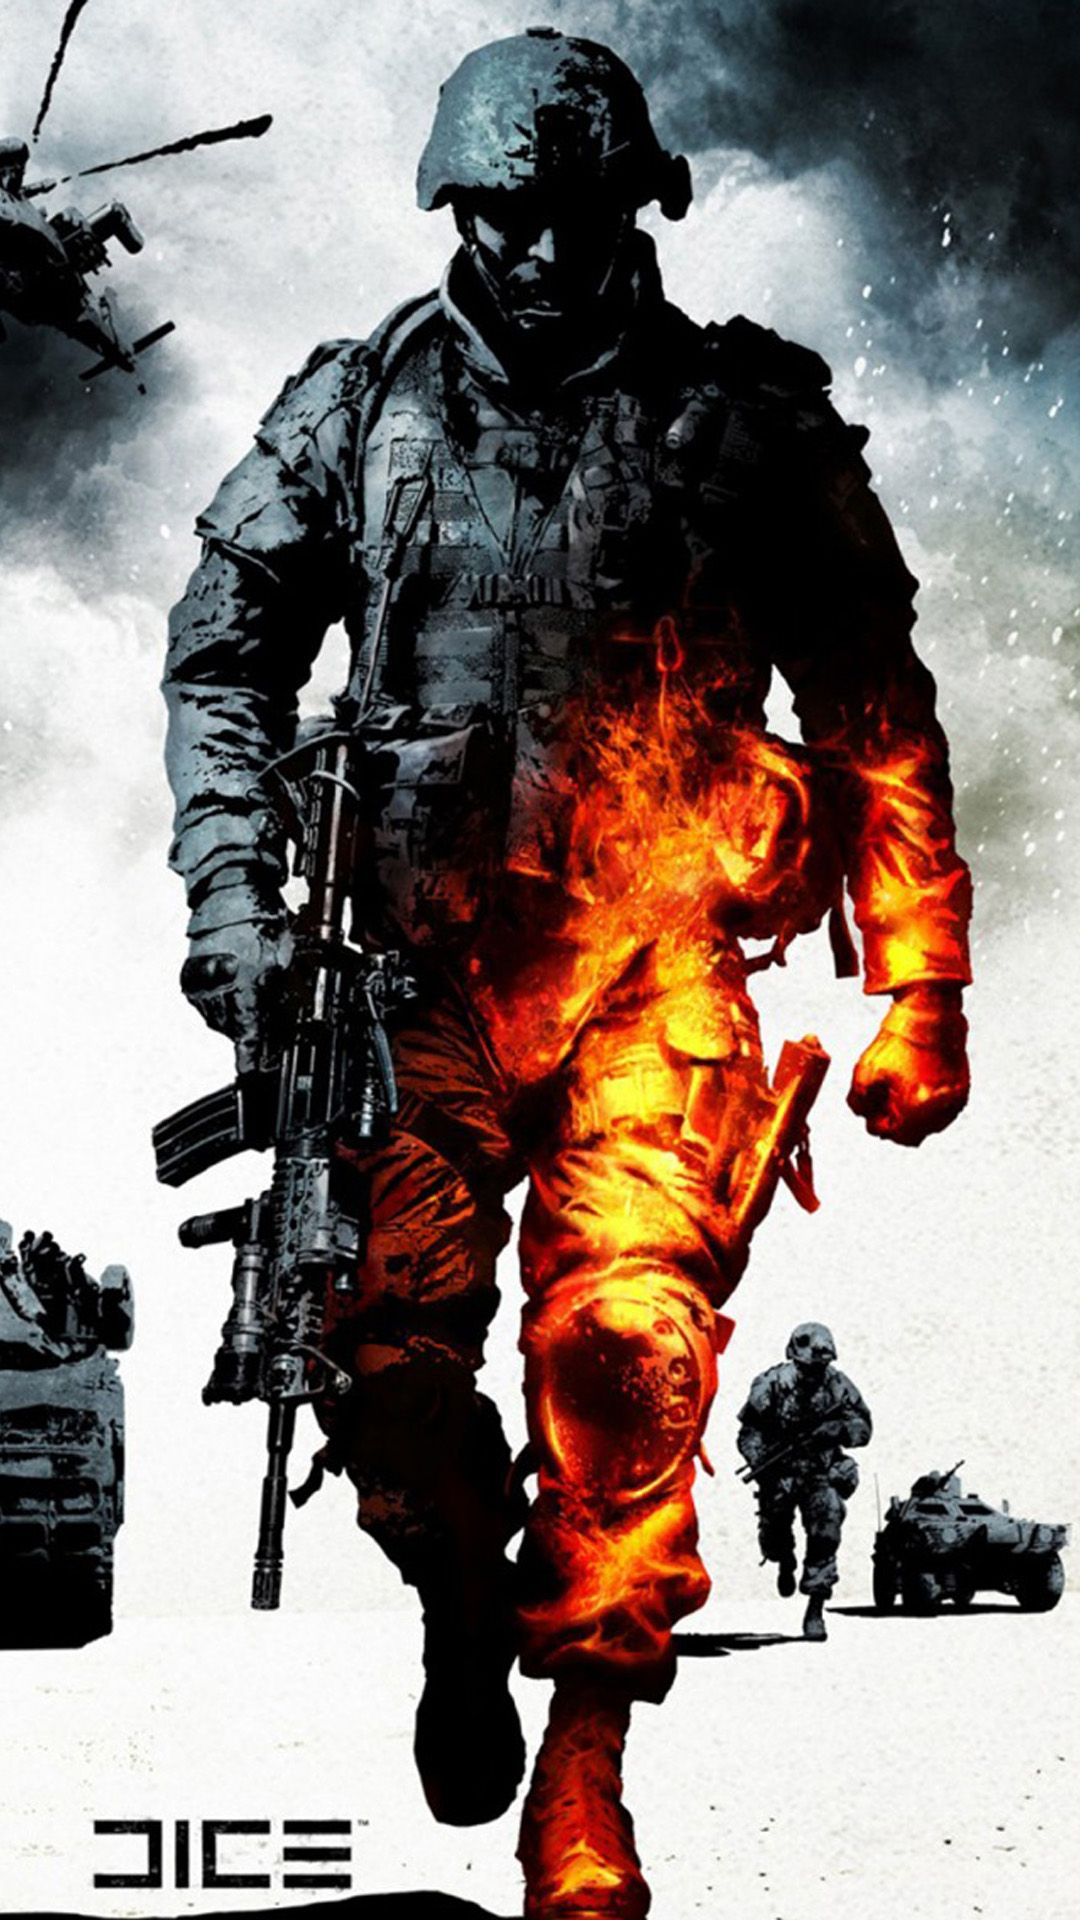 Free Download The Military Burning Soldier Wallpaper Beaty Your Iphone Fire War Soldier Military Batt In 2020 Indian Army Wallpapers Army Wallpaper Army Images